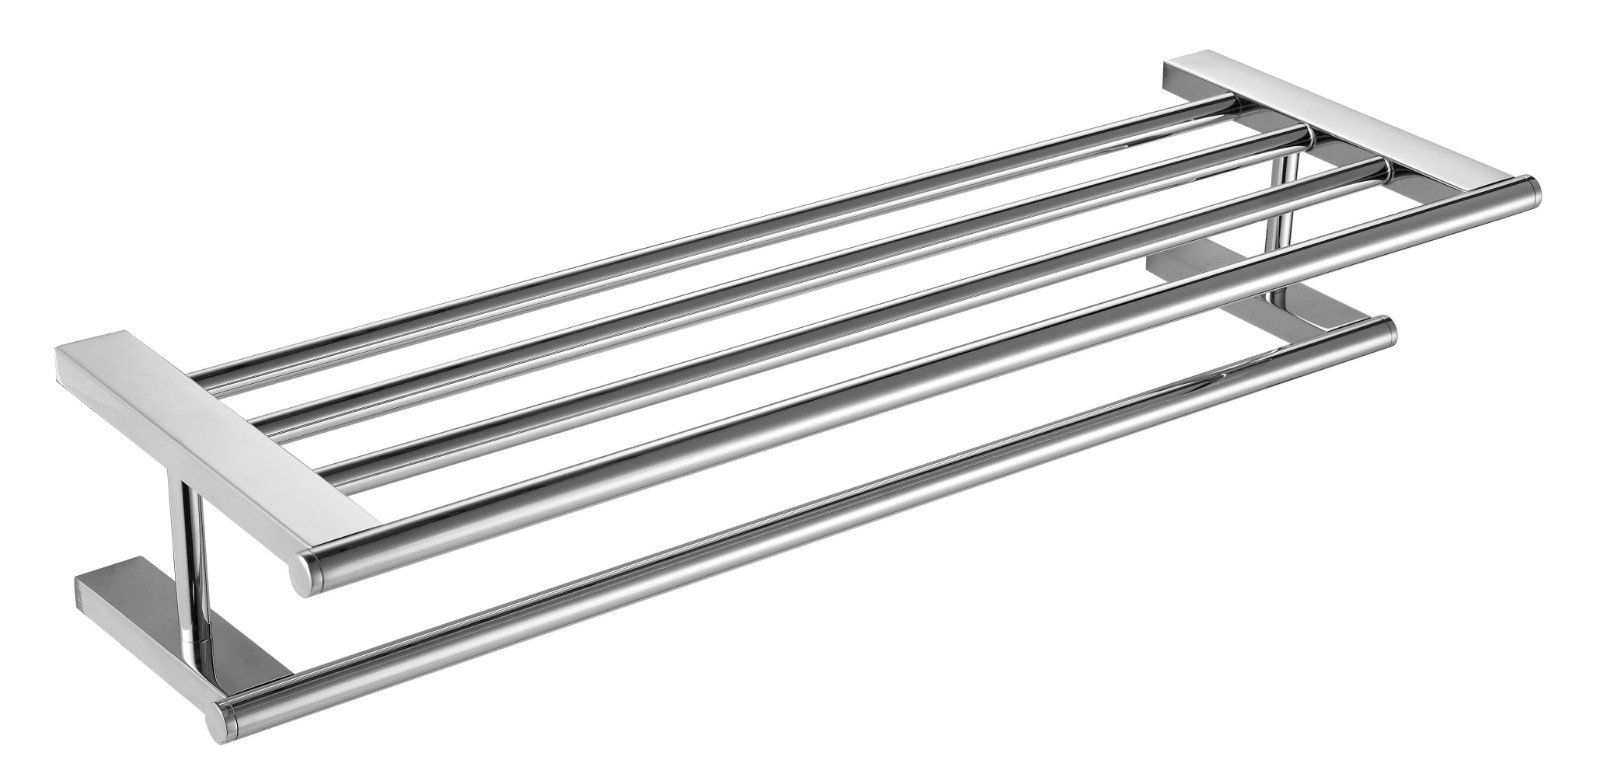 Norye 304 stainless steel bathroom accessories from China for home-1